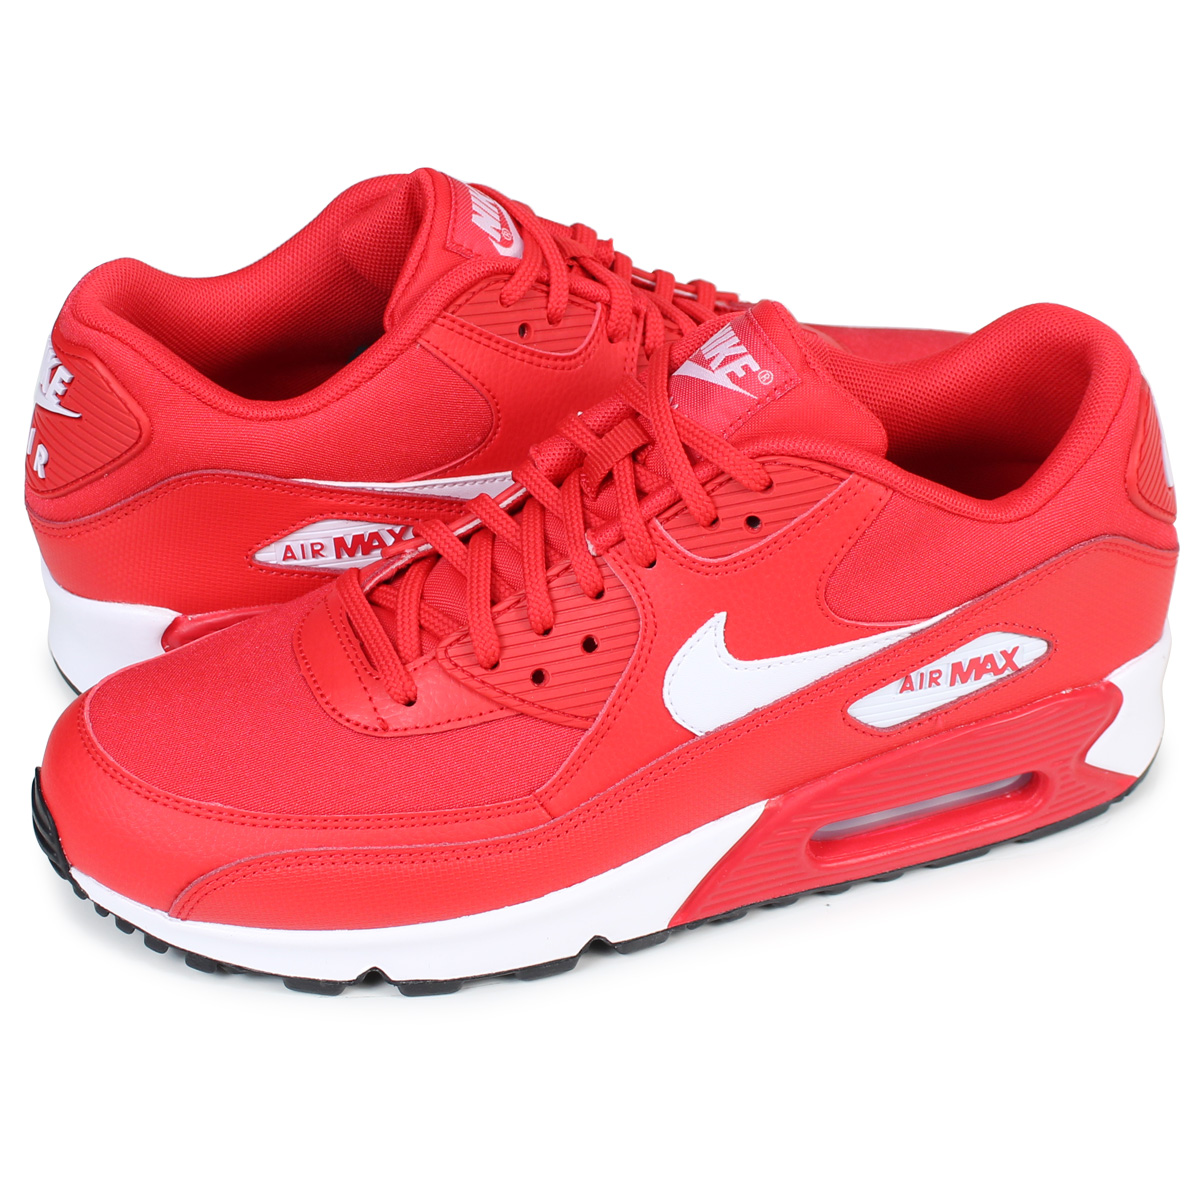 ALLSPORTS: NIKE Kie Ney AMAX sneakers Lady's WMNS AIR MAX